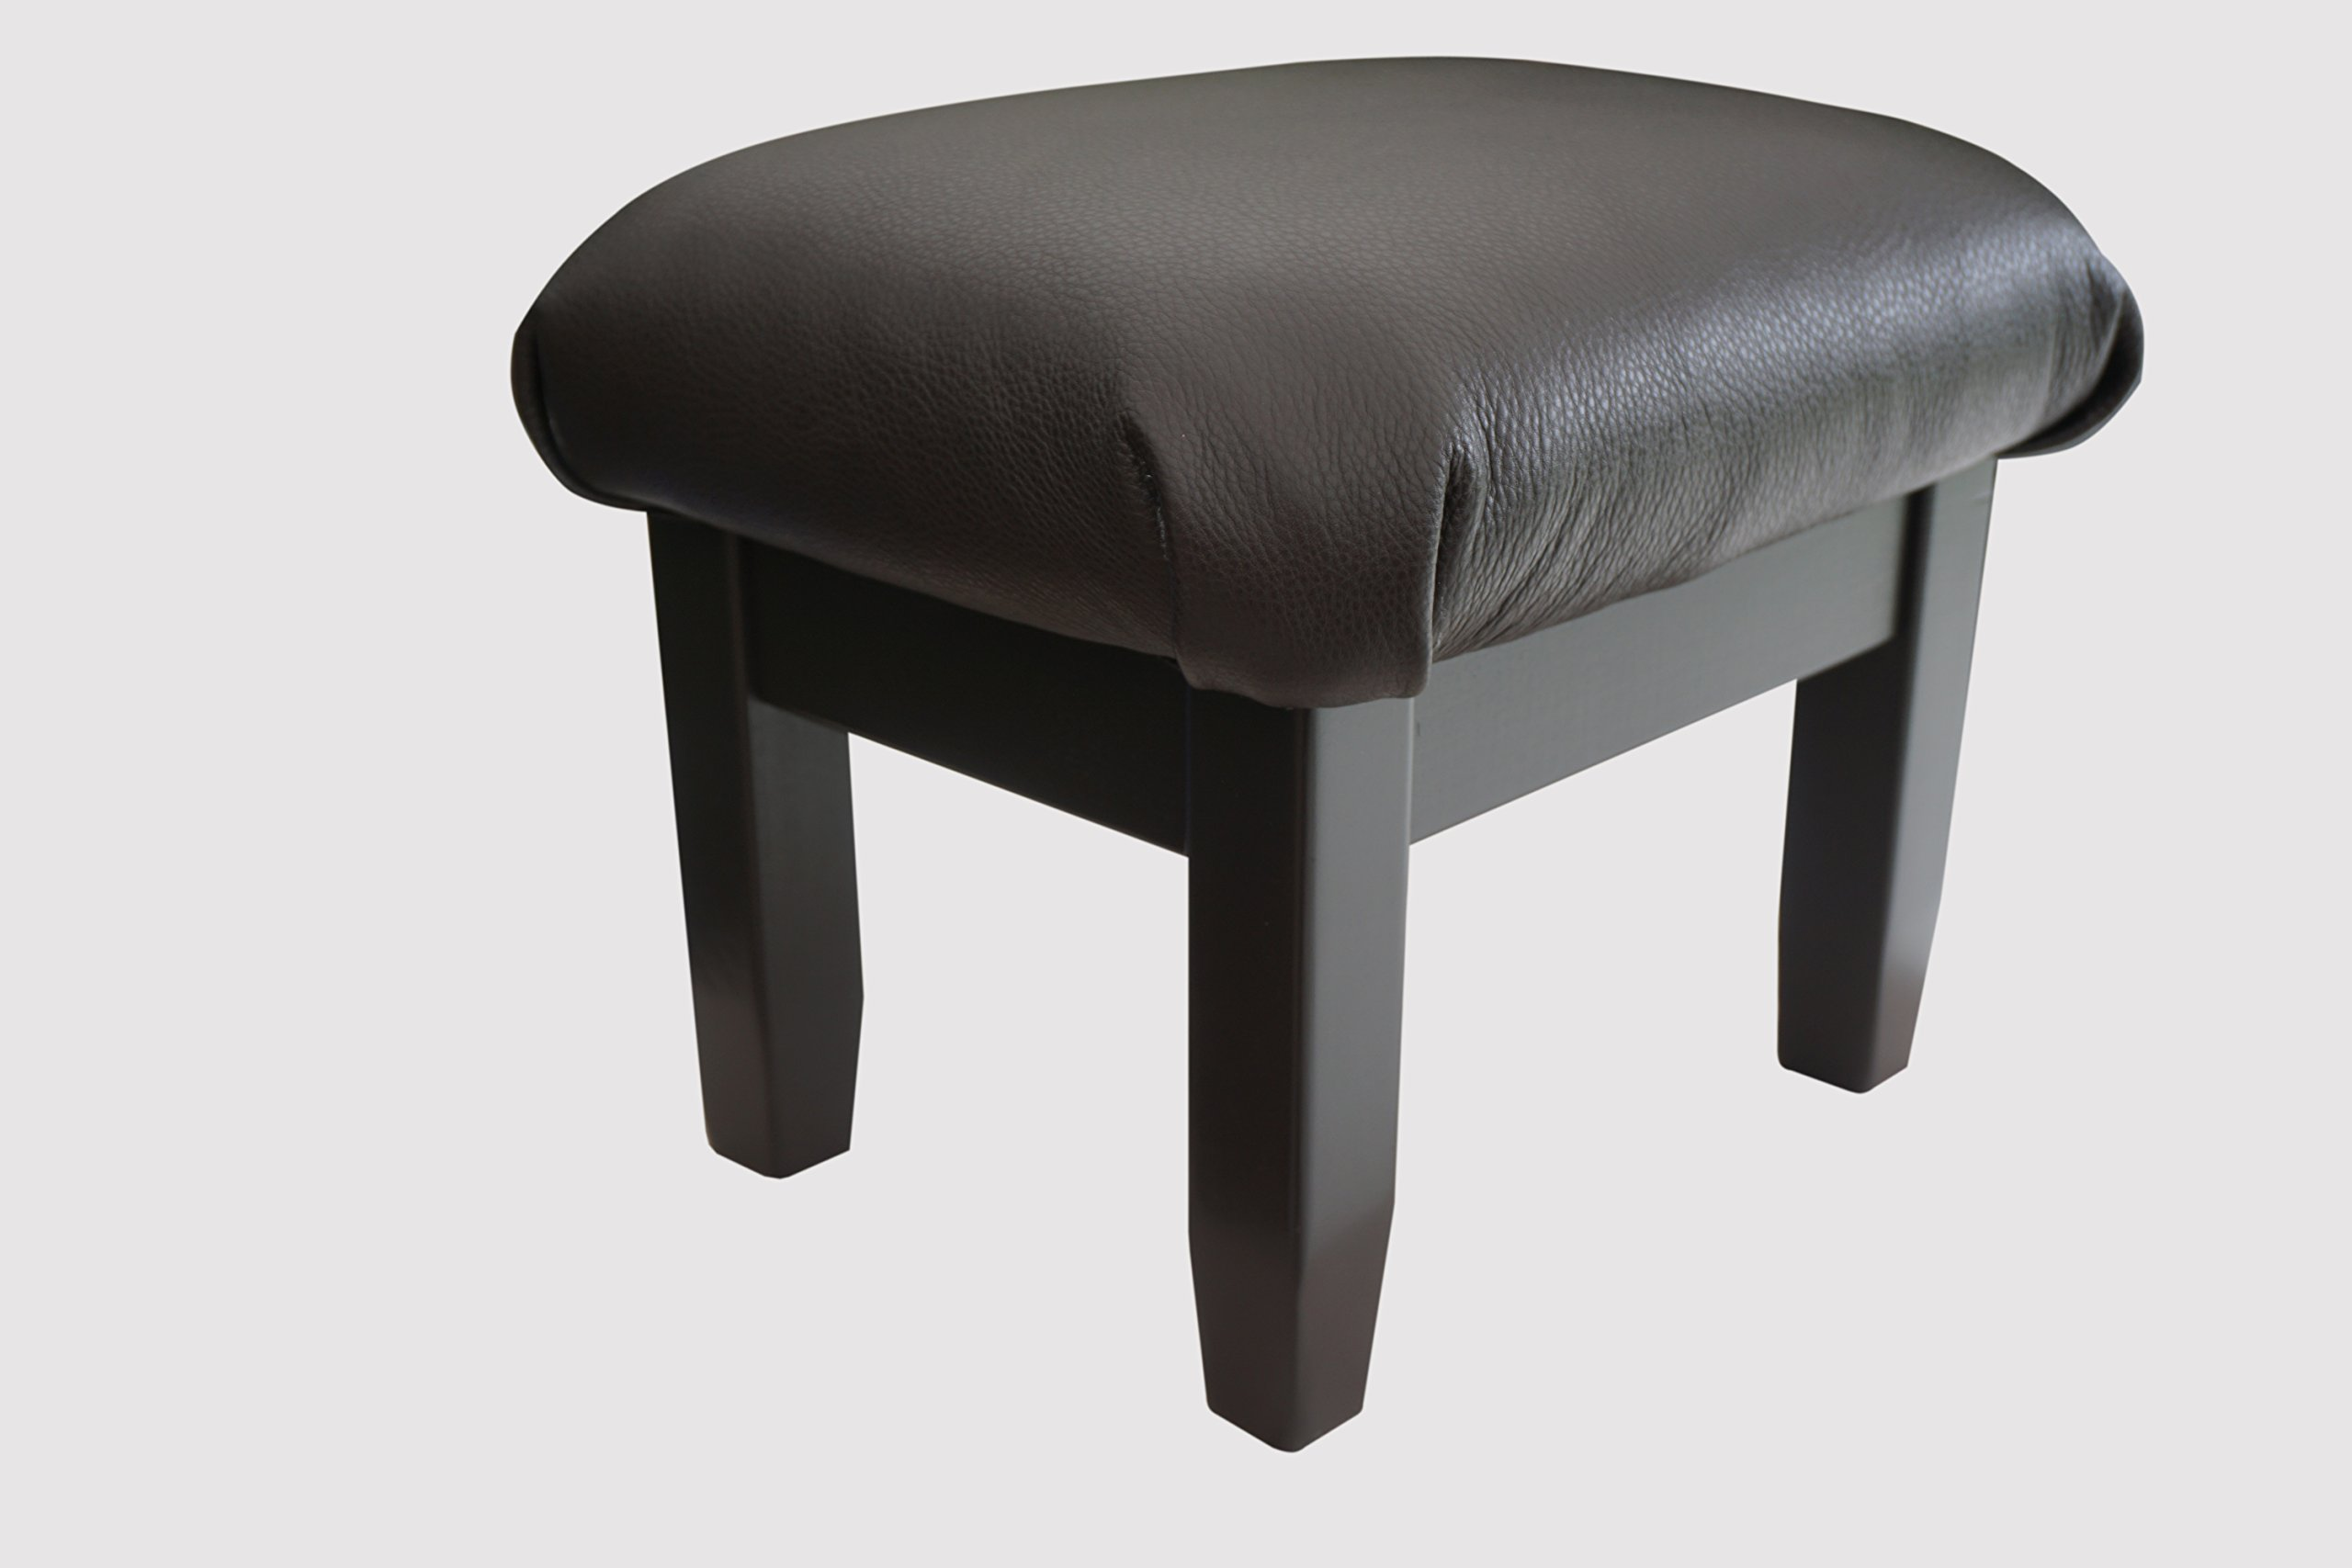 Padded Foot Stool: Dark Chocolate Truffle Leather, 12'' Tall, Espresso Frame (Made in the USA)